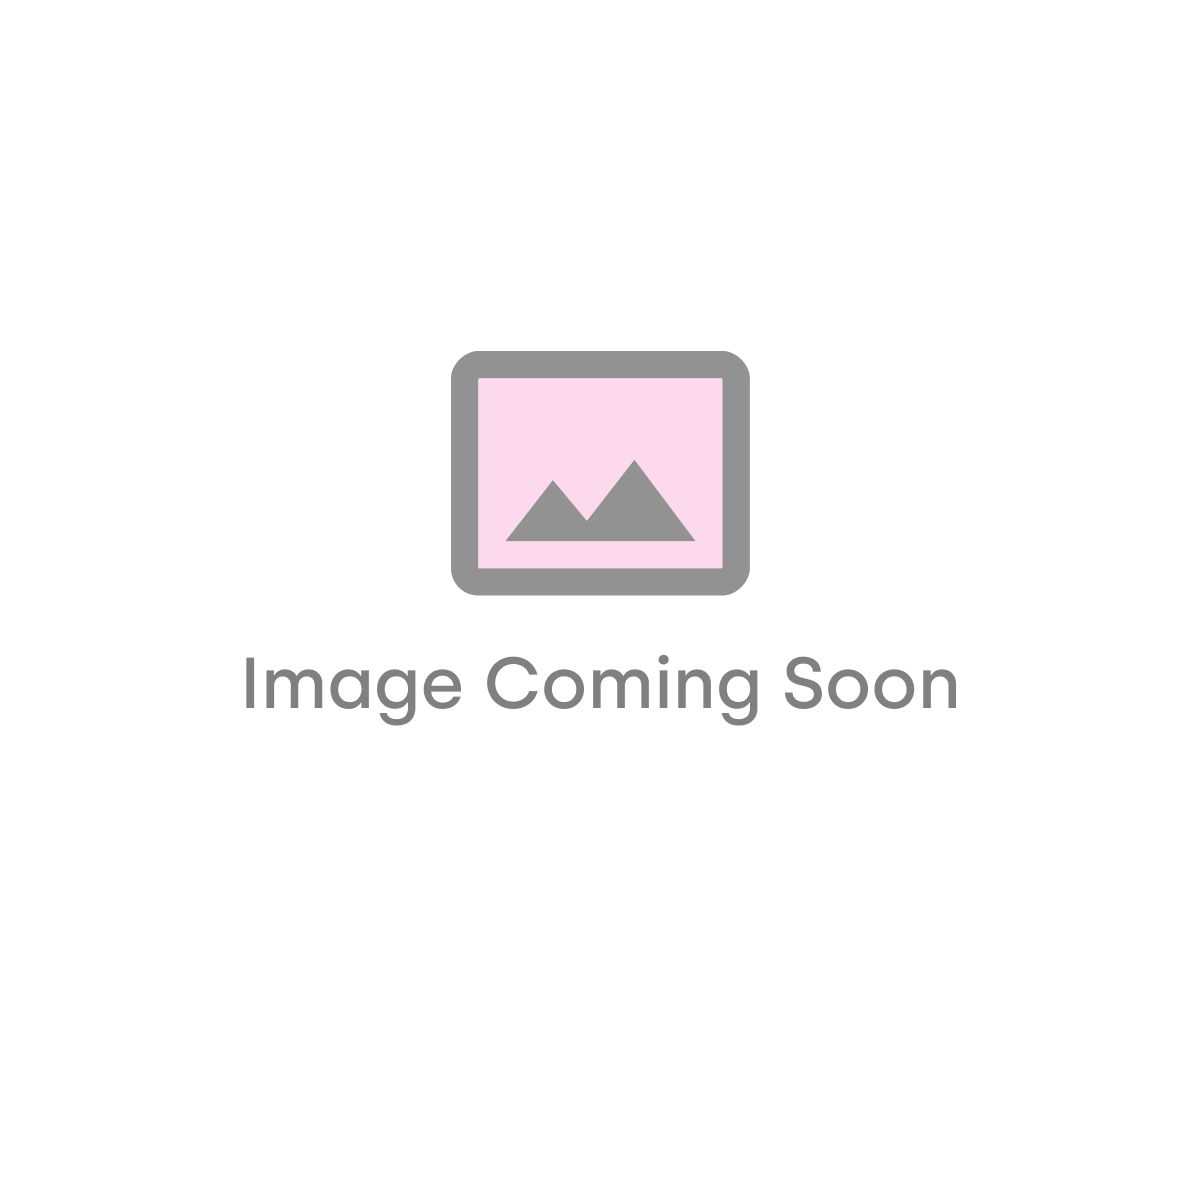 Tomahawk Oak 8mm Laminate Flooring - 2.22sqm per pack - 19161